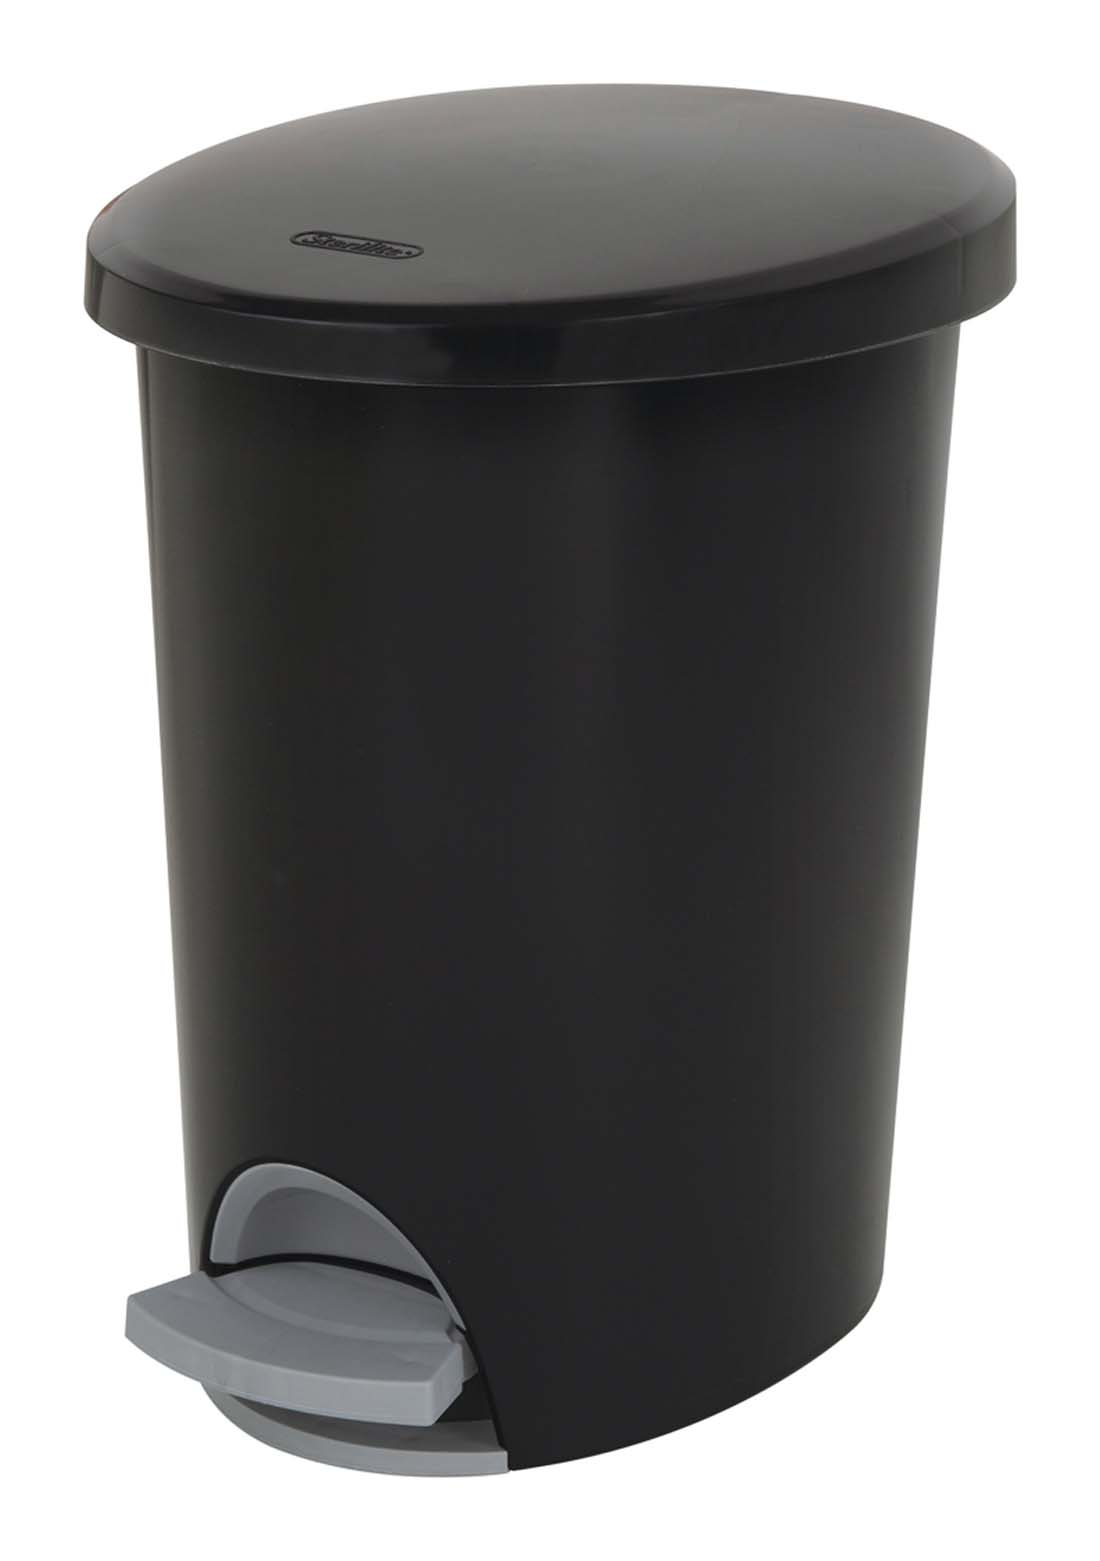 View STERILITE WASTE BASKET 10 QUART WITH STEP OPENER BLACK **MADE IN USA**